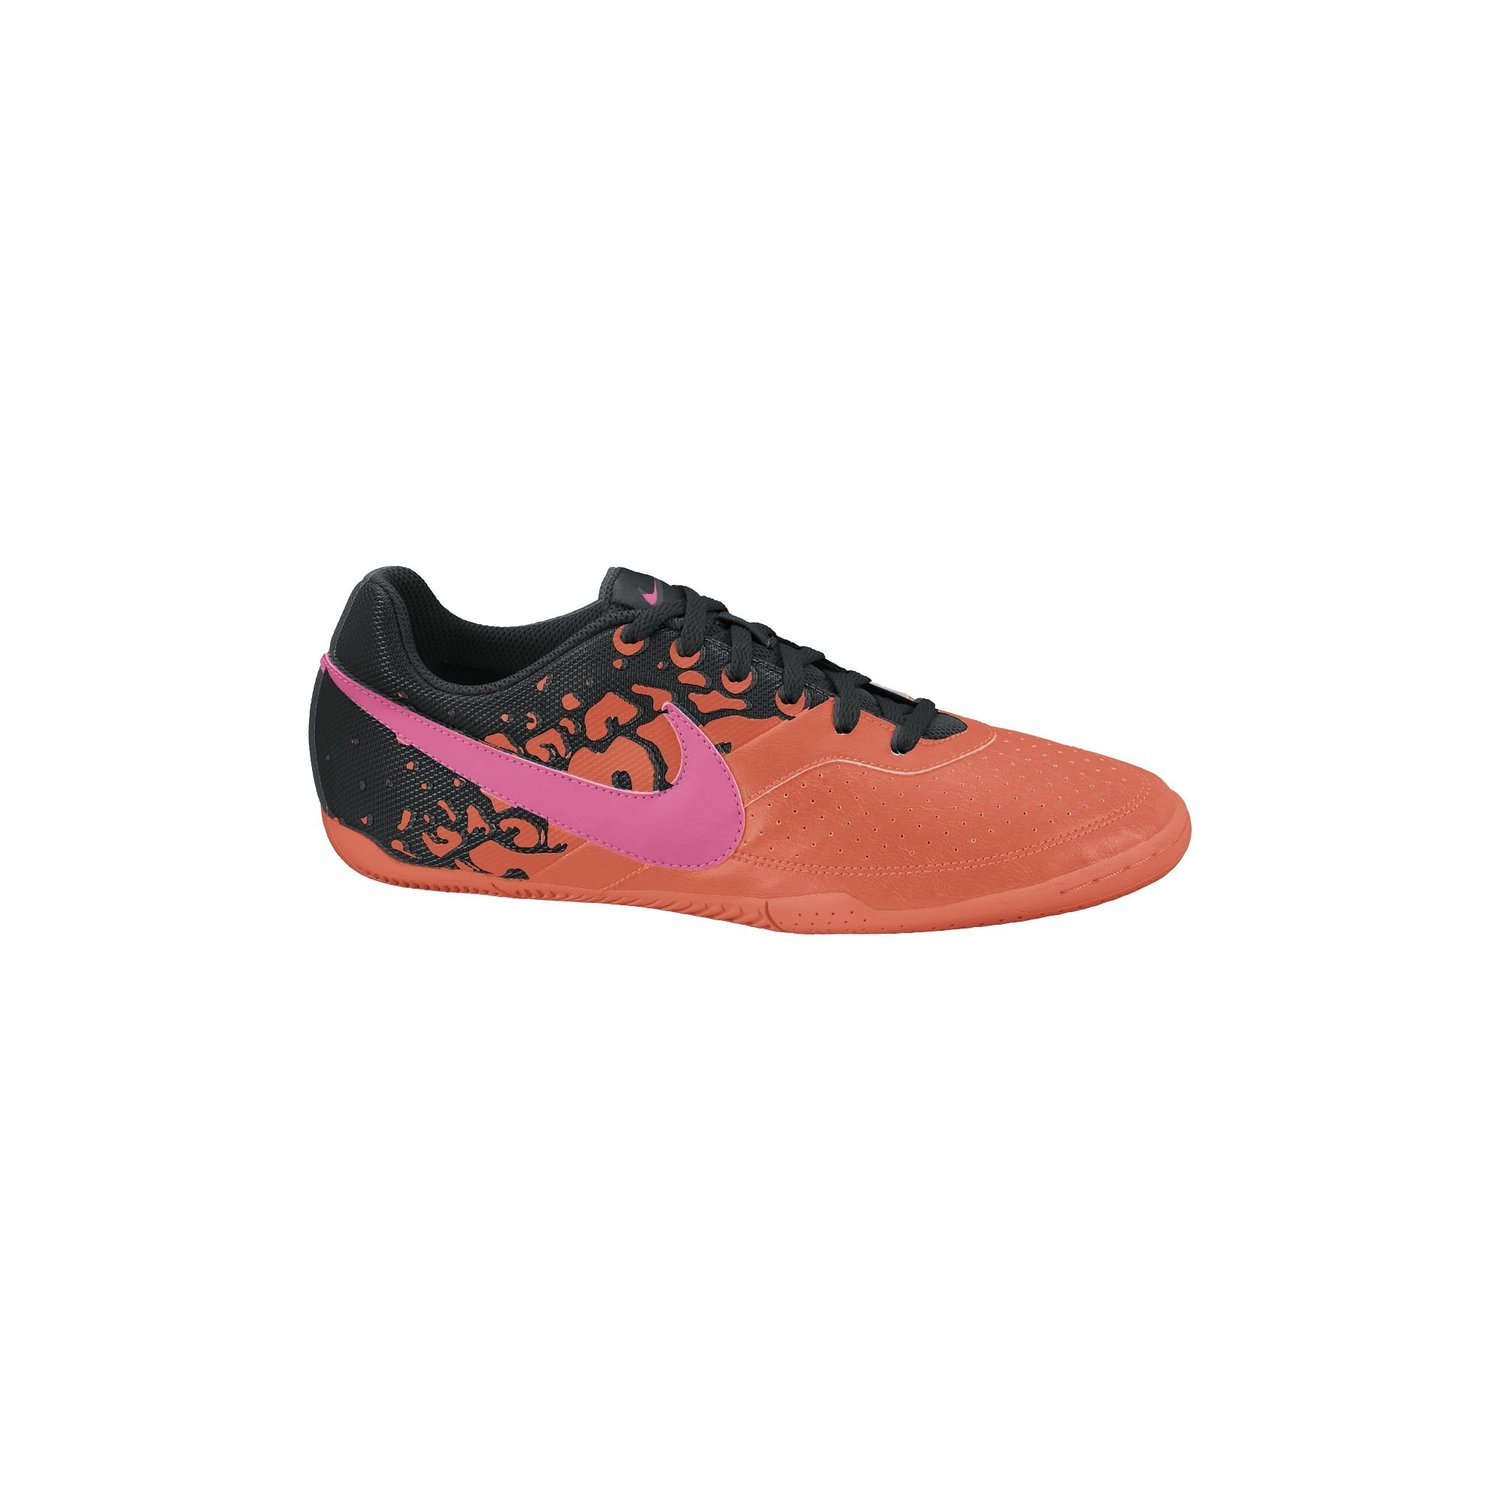 8c4e980ee Get Quotations · Nike Men's Nike Elastico II Total Crimson/Black/Pink Flash  10.5 D - Medium